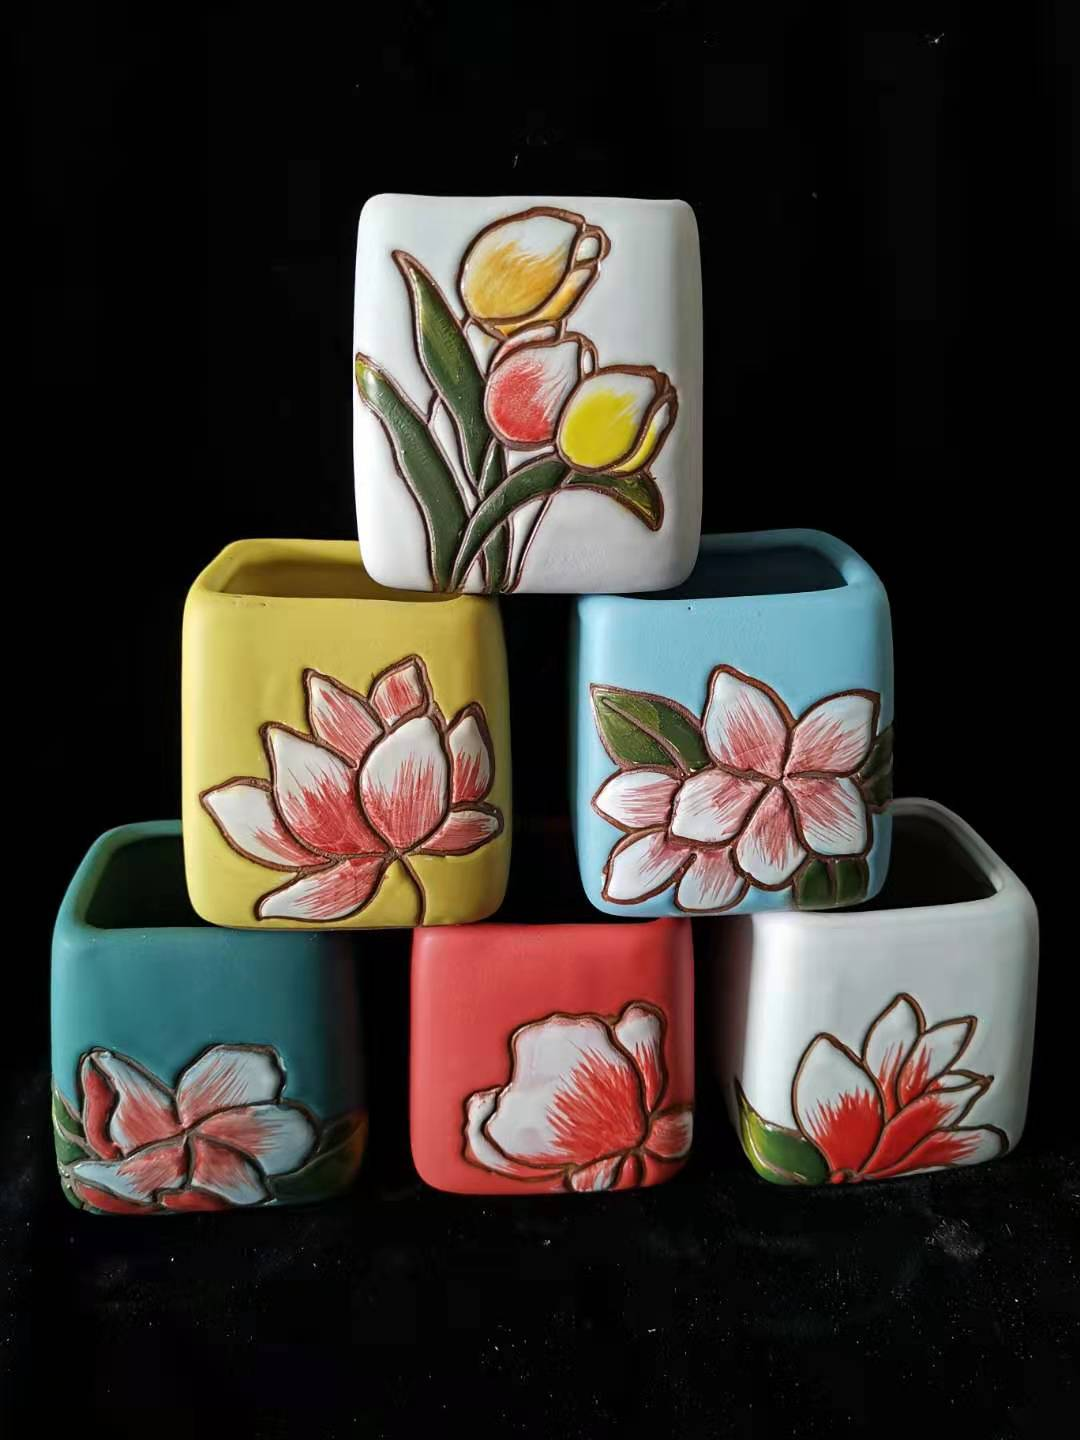 Set of 6 - ceramic succulent pots 6cm x 6cm x 7.5cm